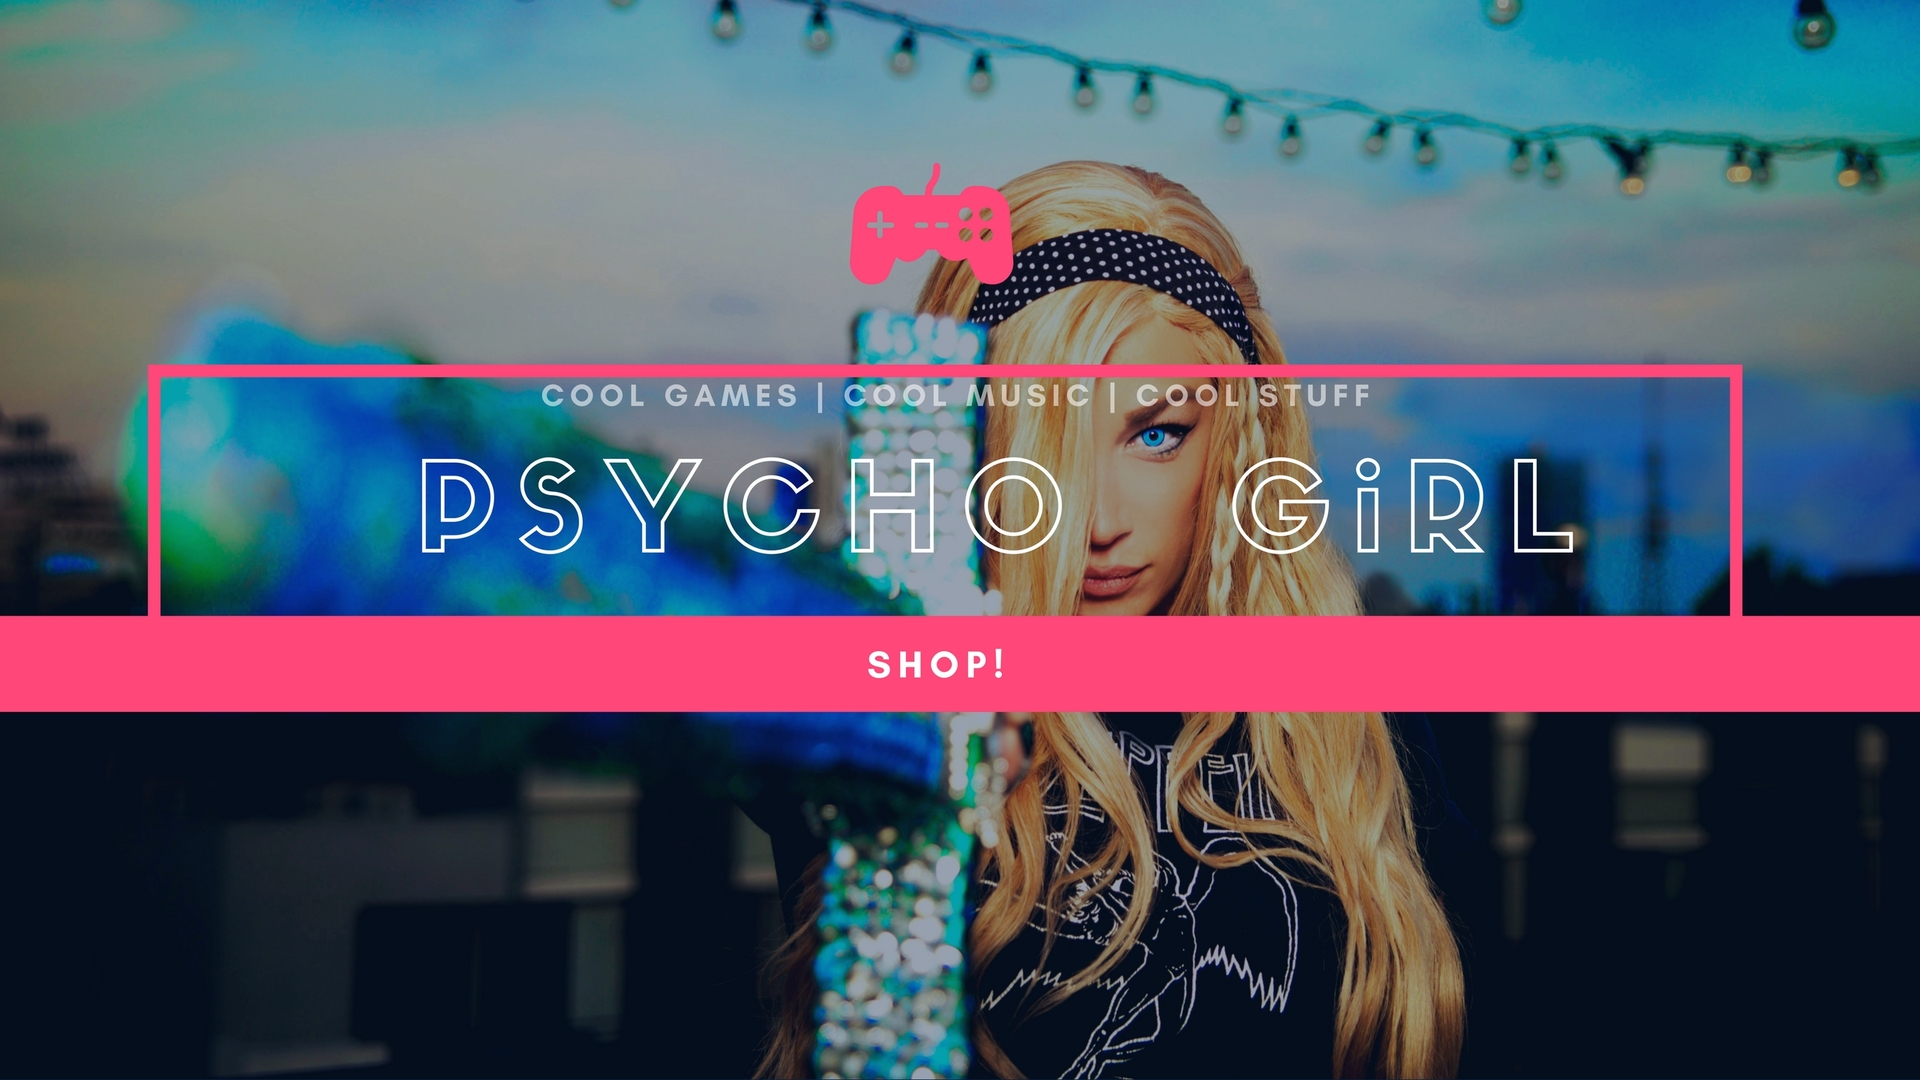 PSYCHO GiRL MERCH Store